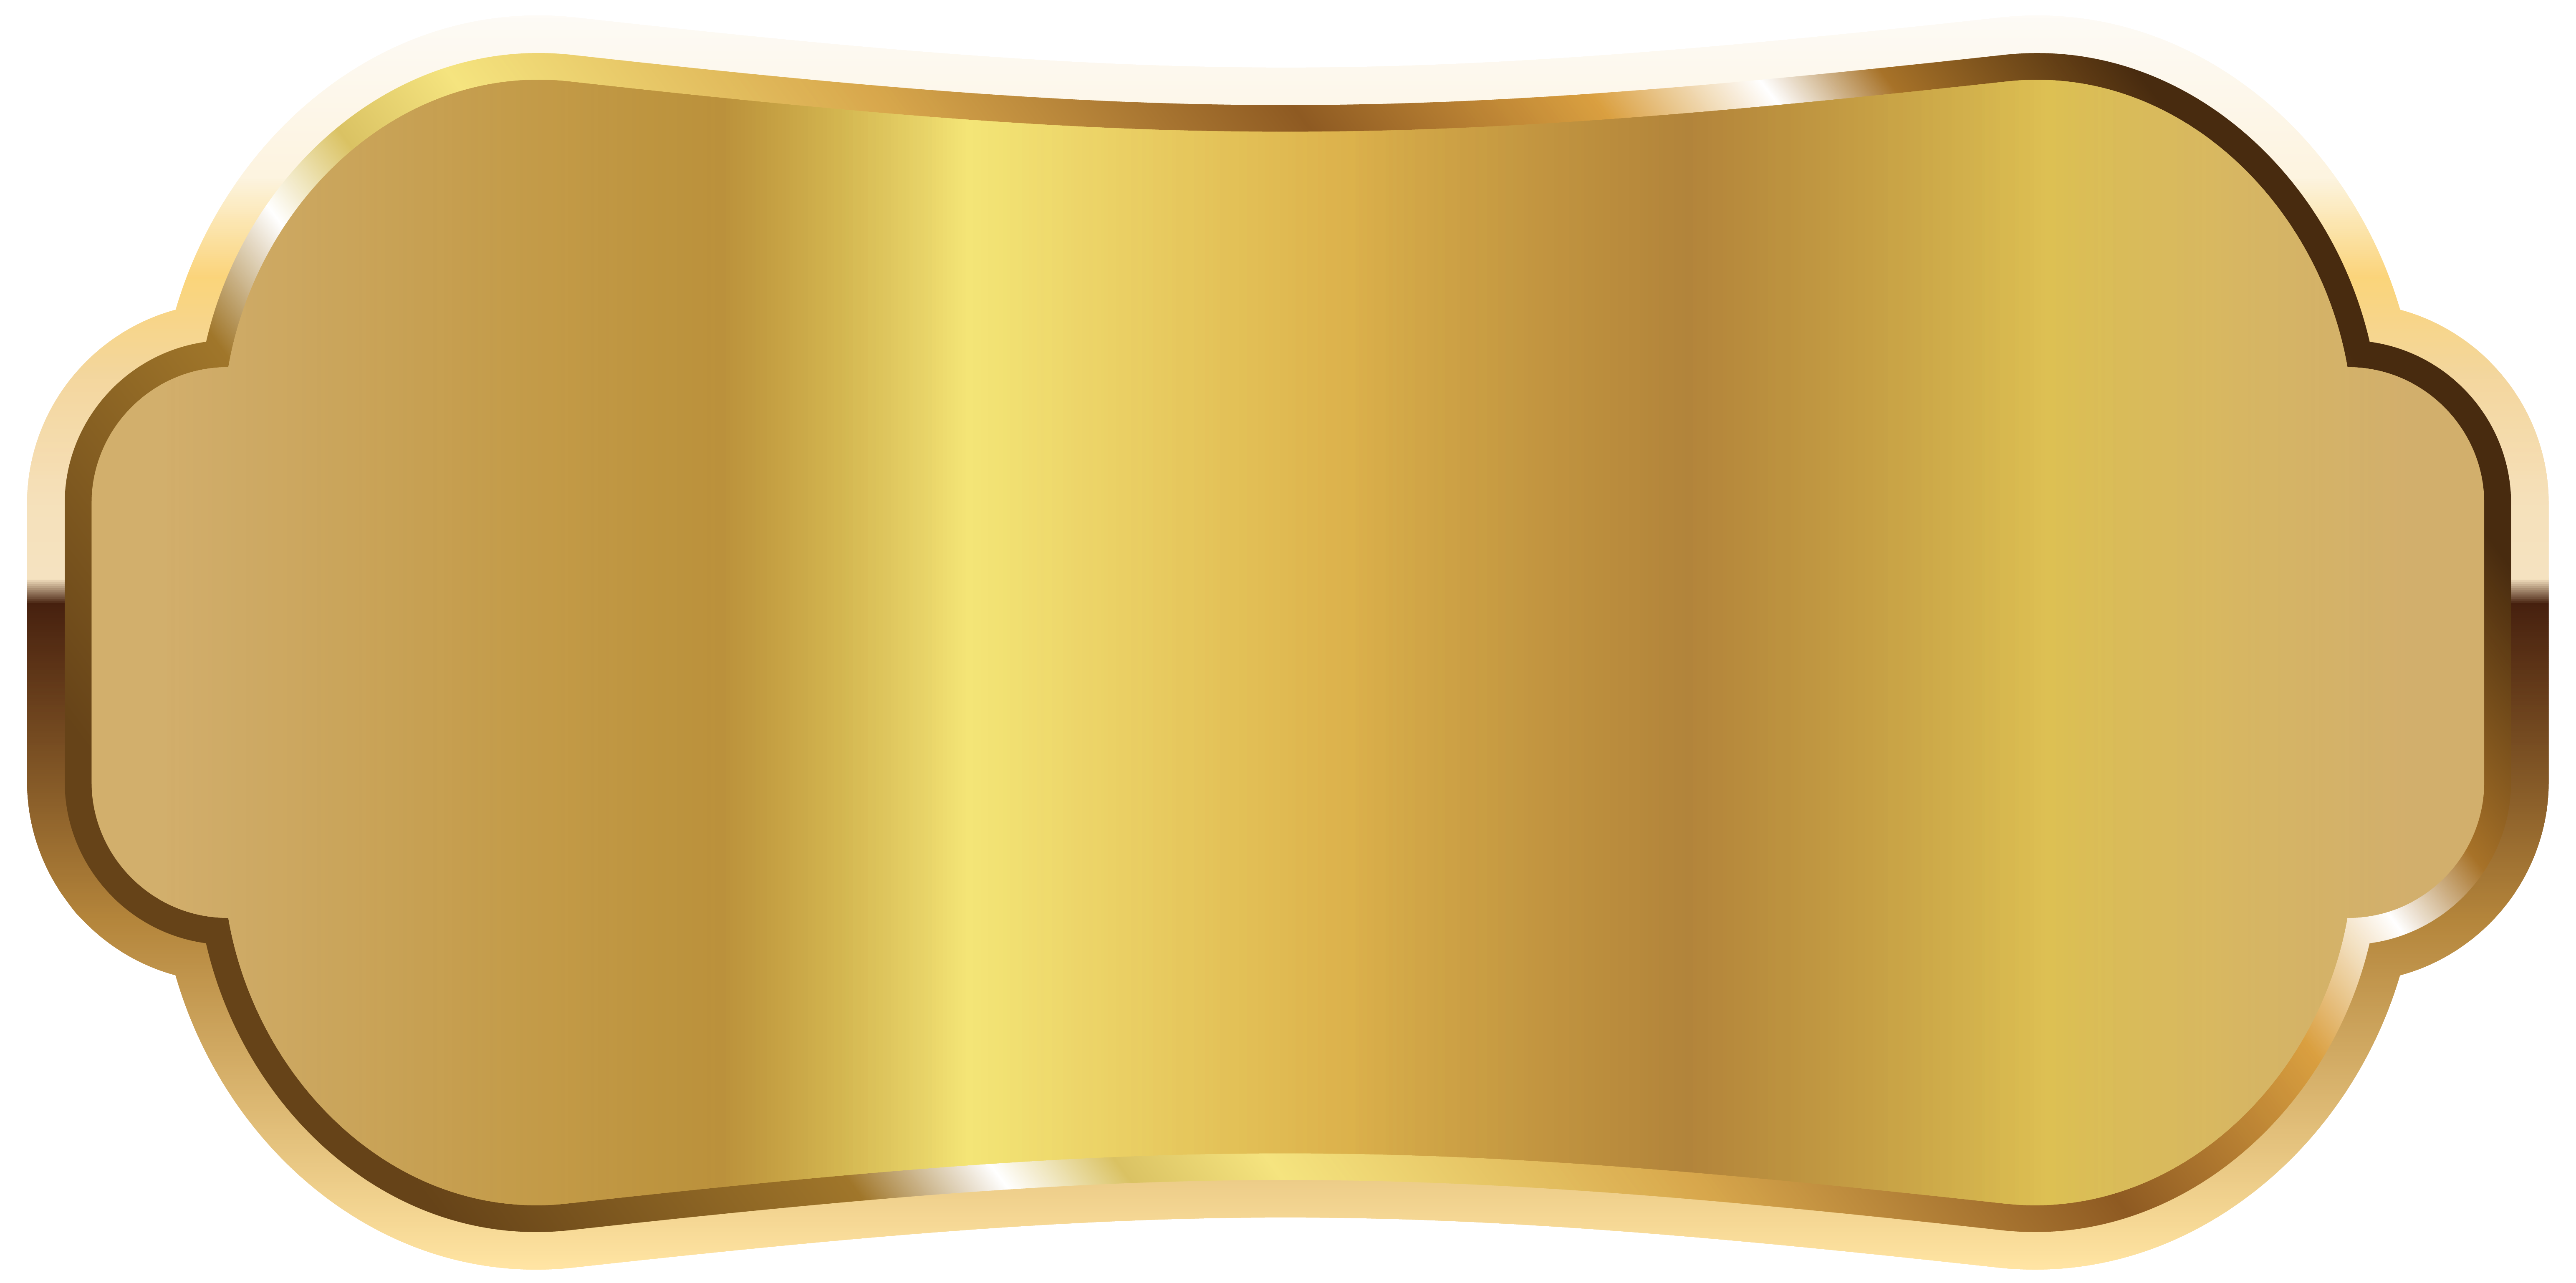 download Golden label png image. Gallery clipart.